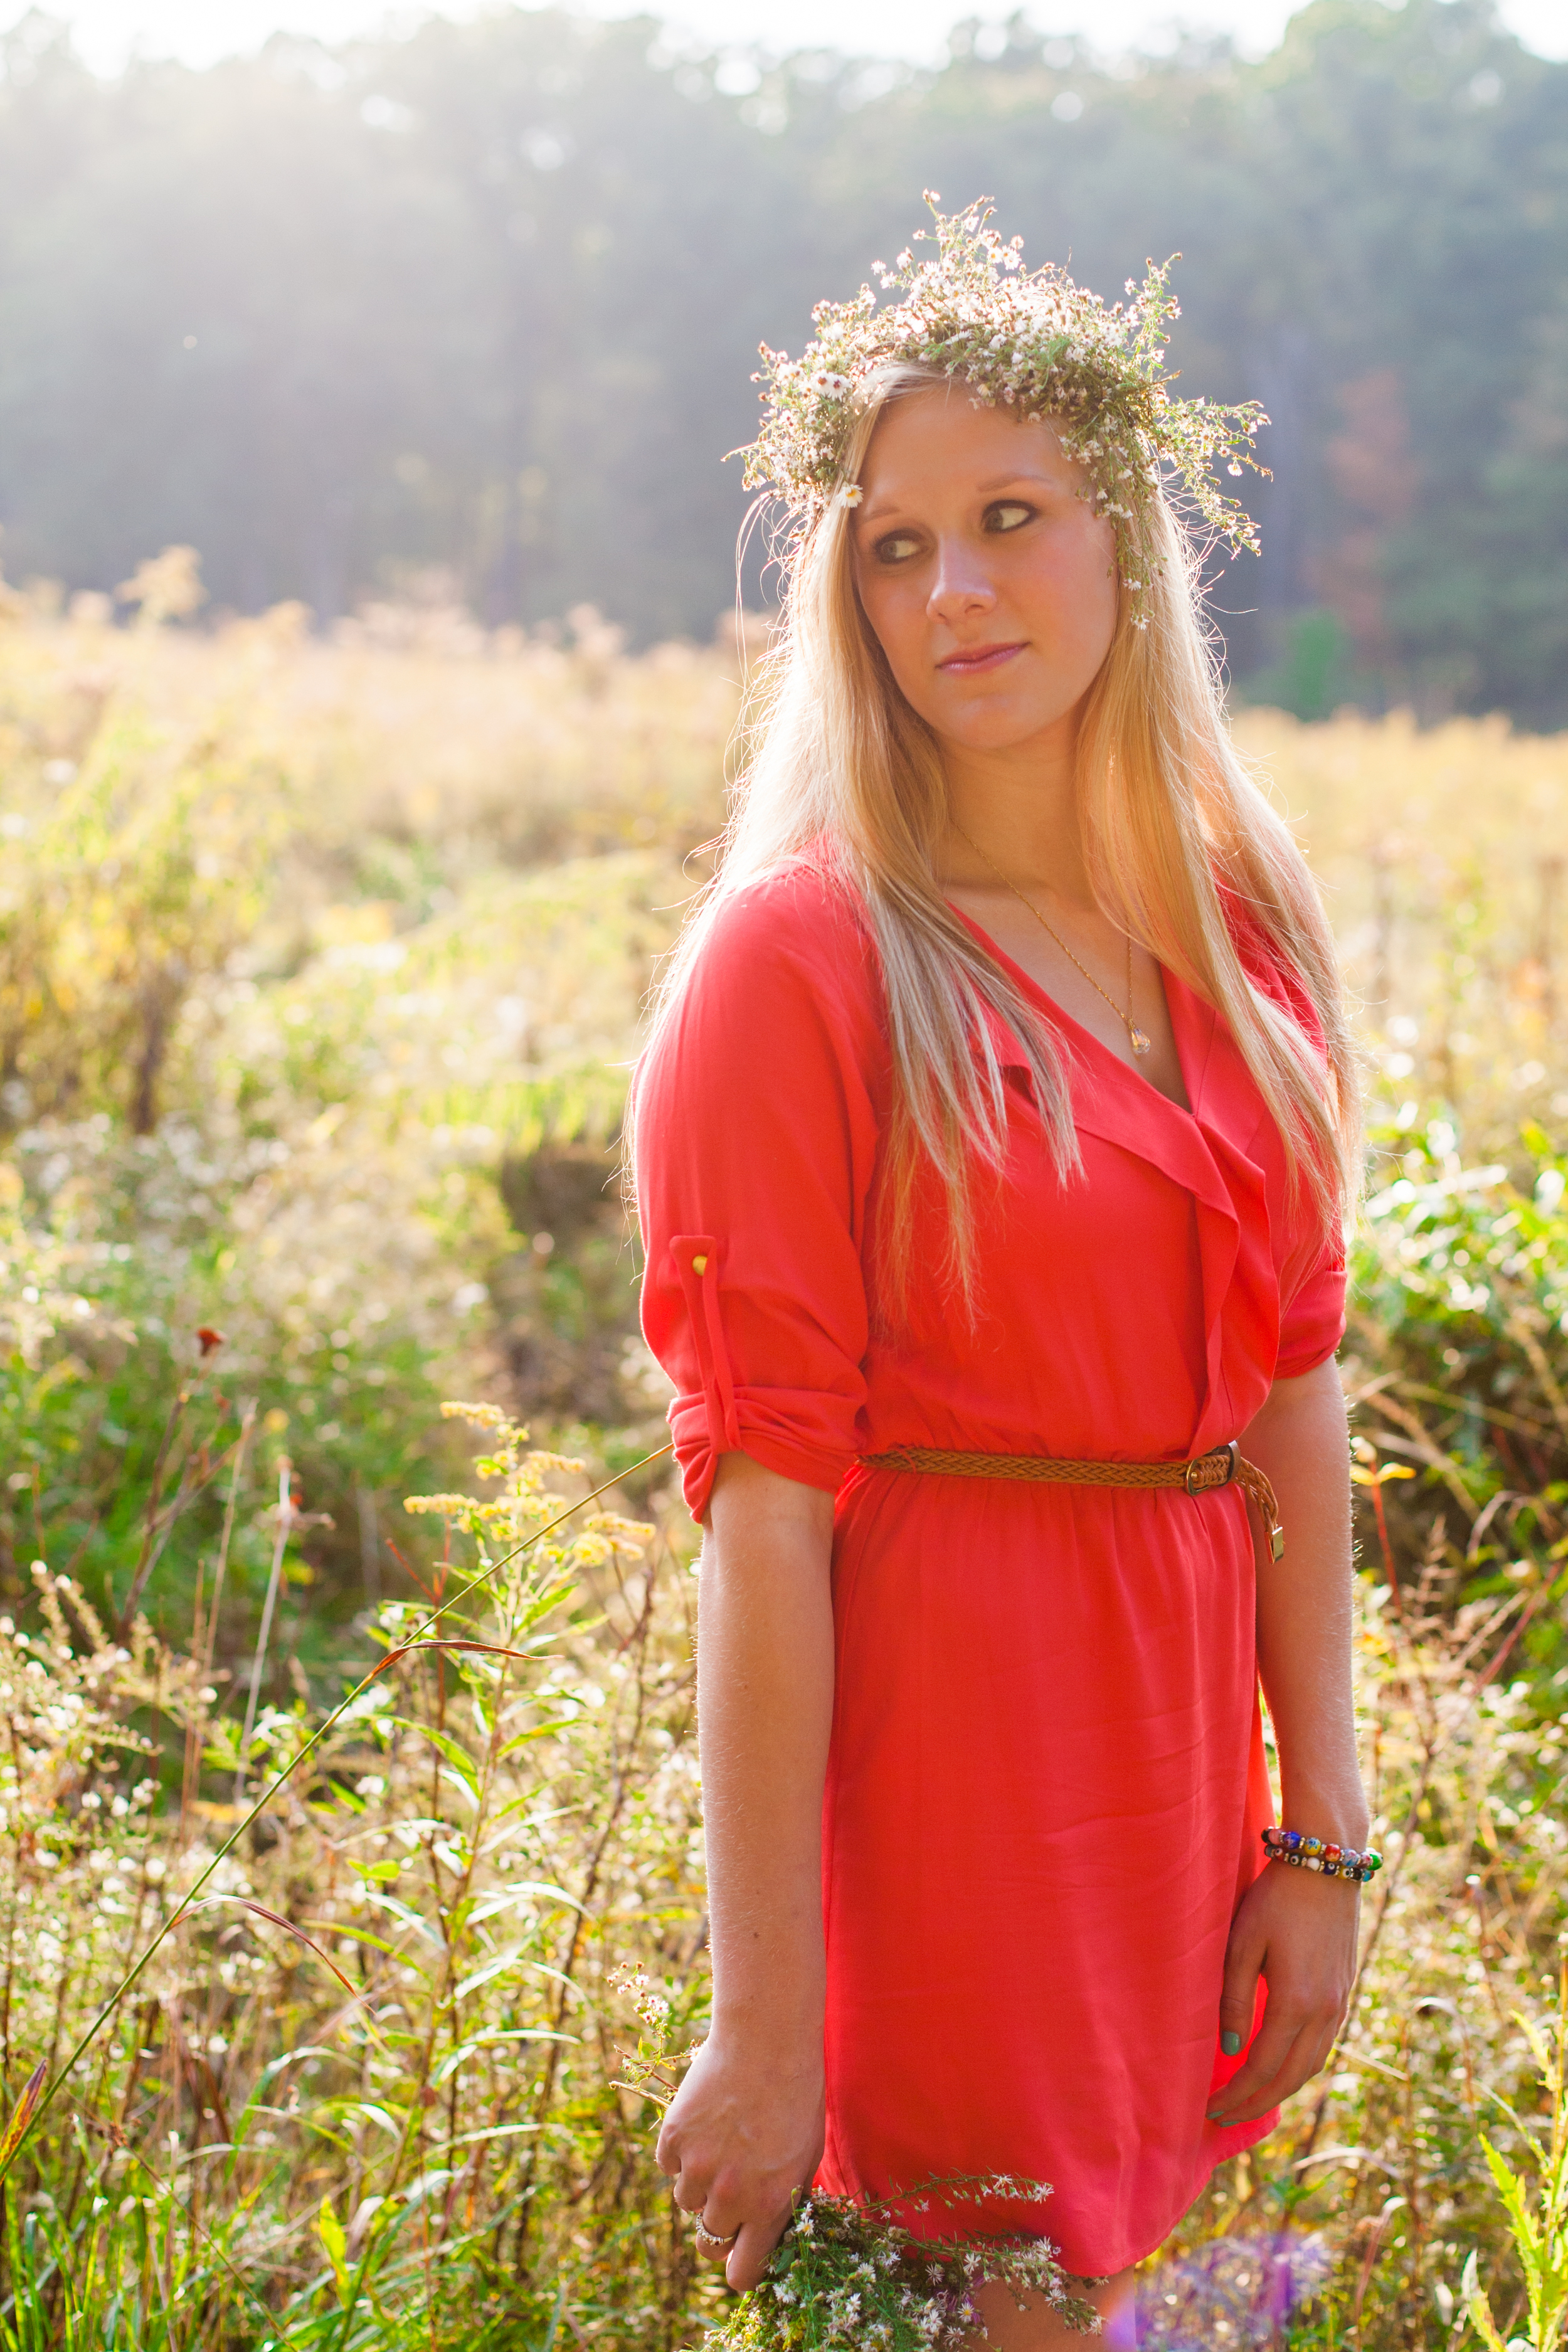 Samantha_Senior_Portraits-65.jpg